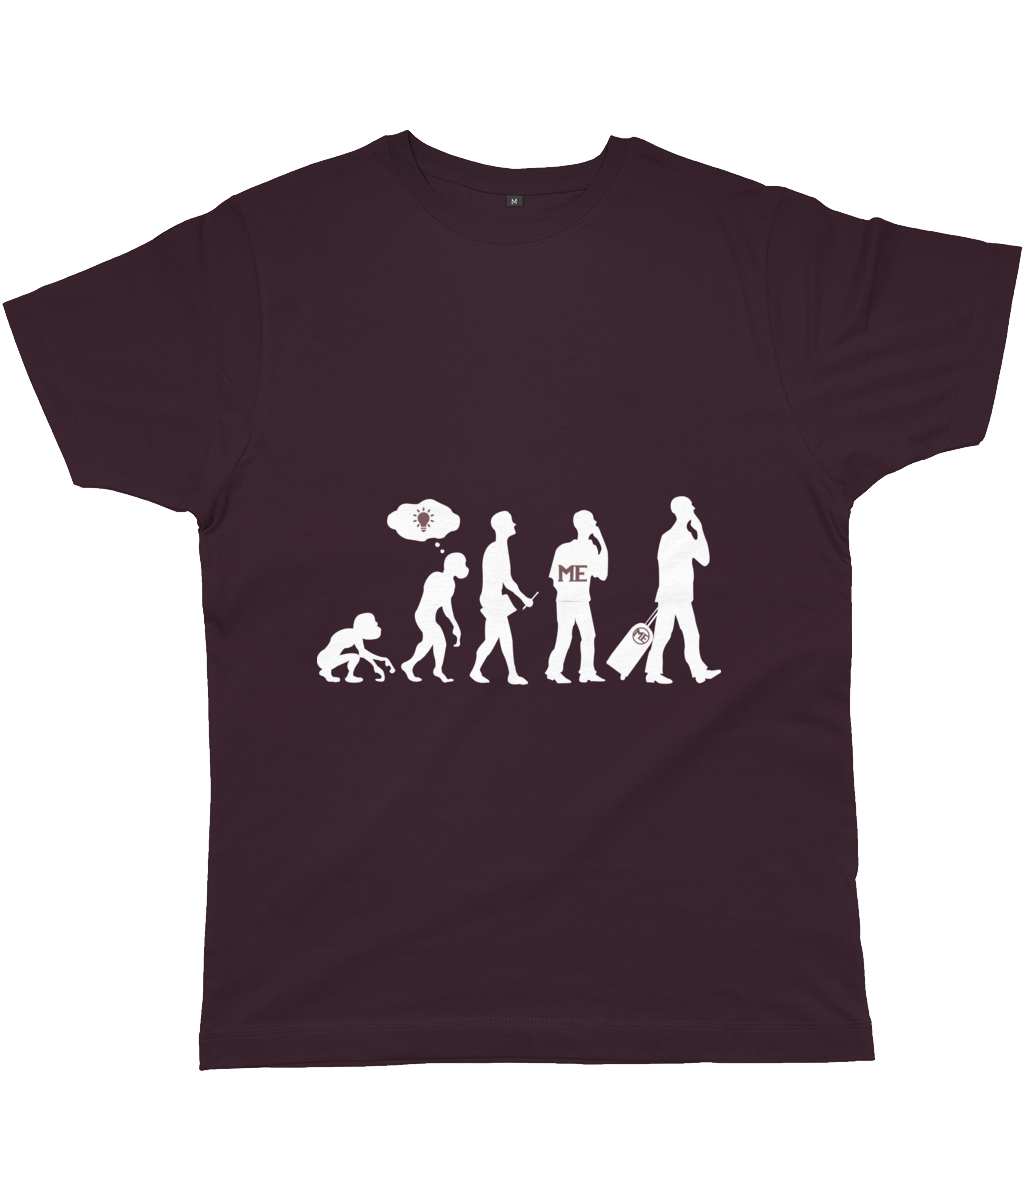 ENTREPRENEUR EVOLUTION BAMBOO T-SHIRT Clothing - MORILLO ENTERPRISE